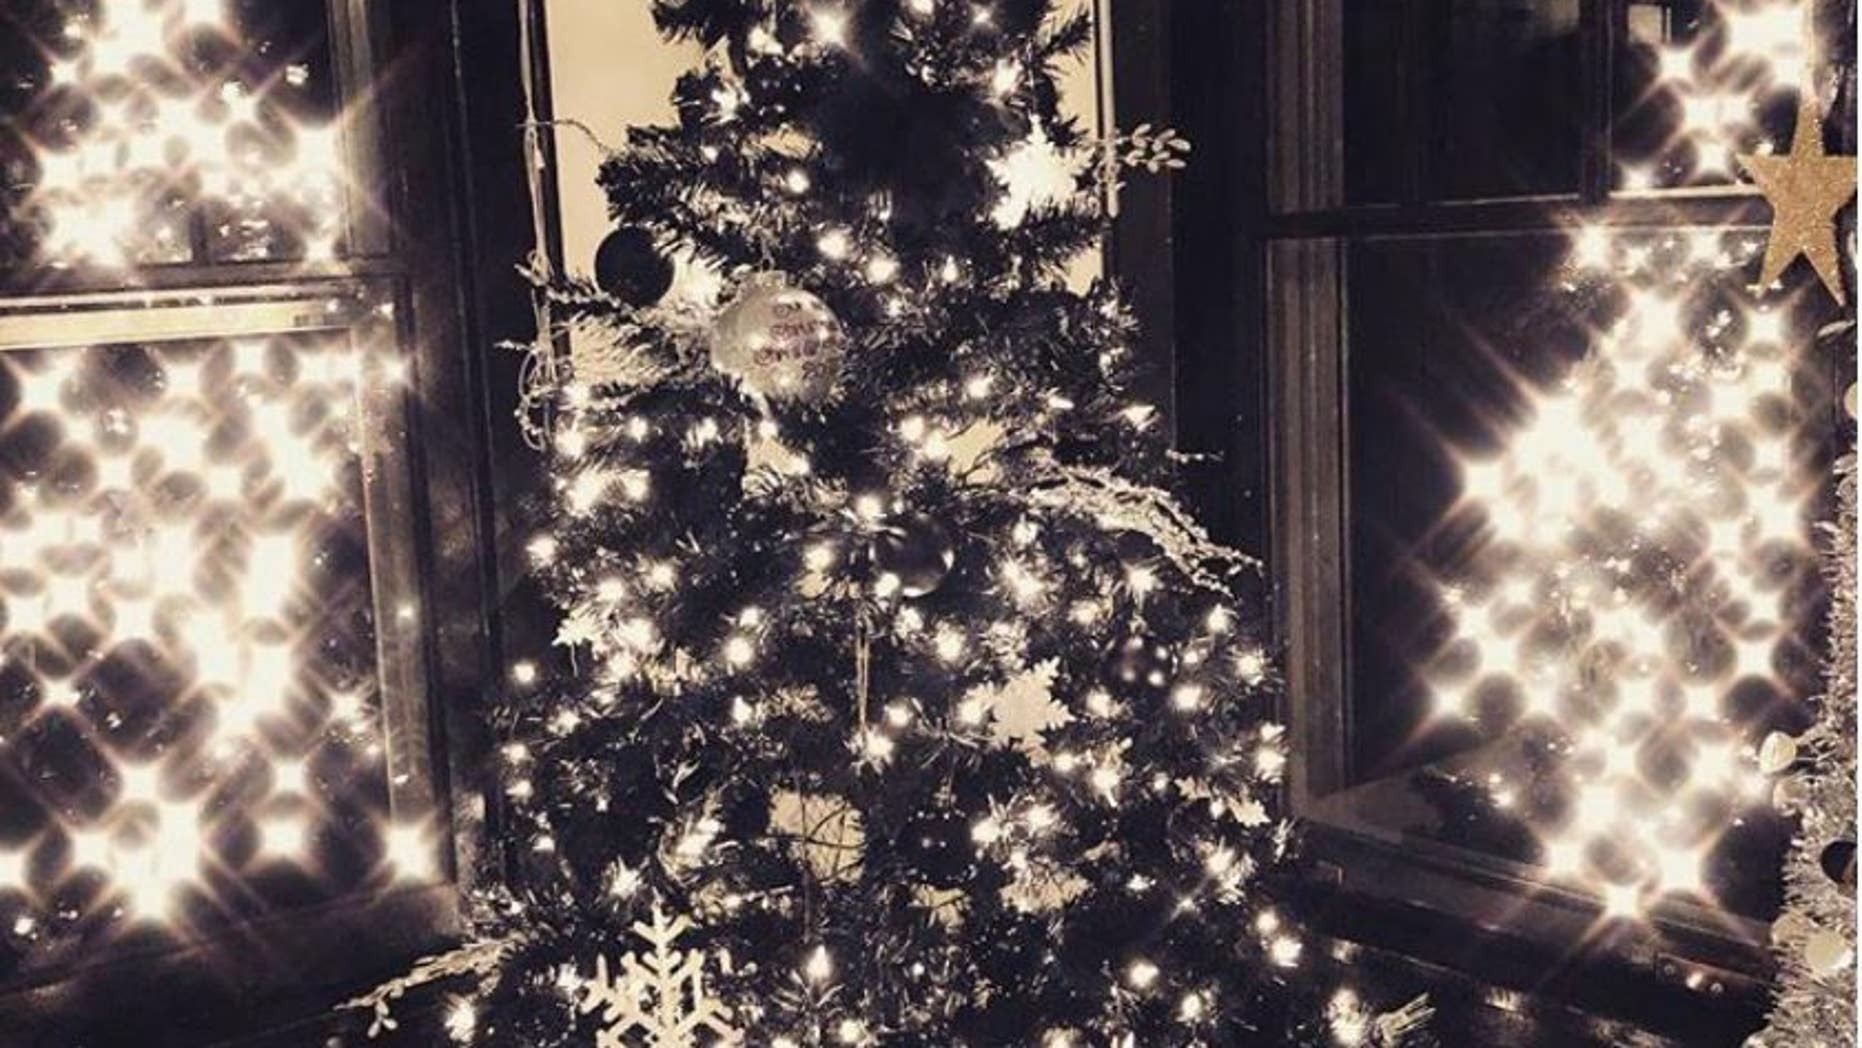 Black Christmas Trees Become Hottest New Holiday Trend This Season